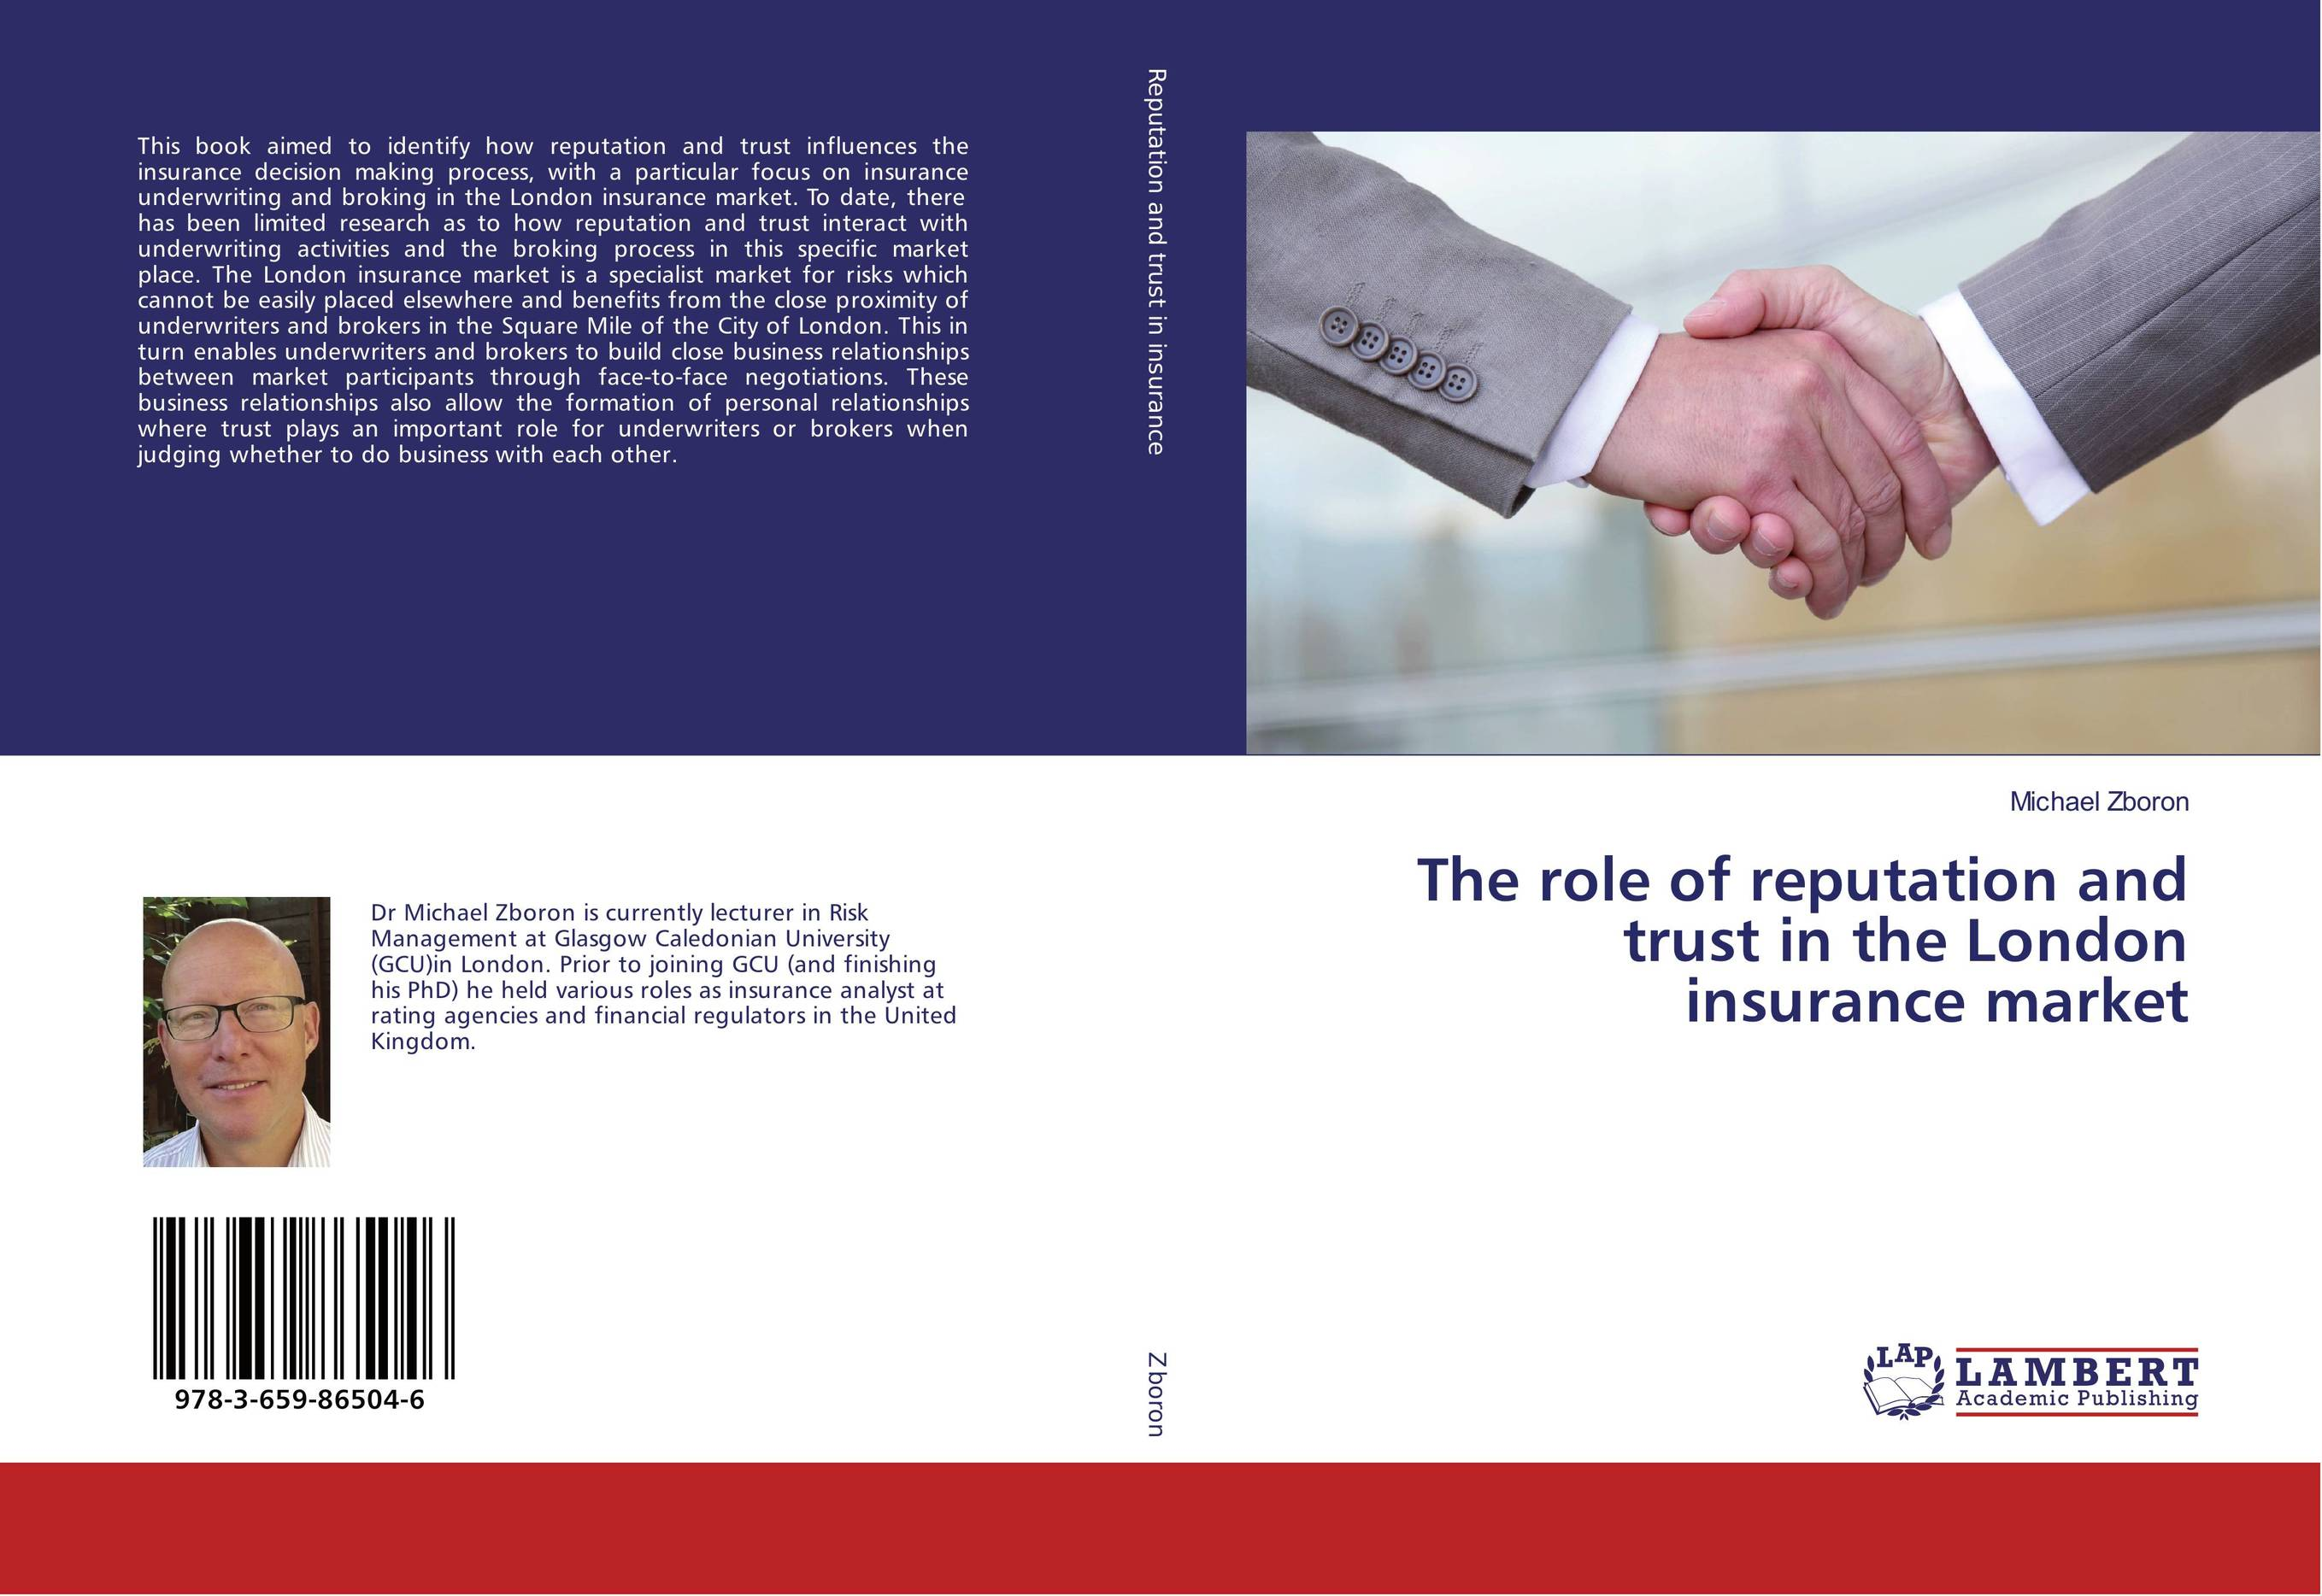 The role of reputation and trust in the London insurance market